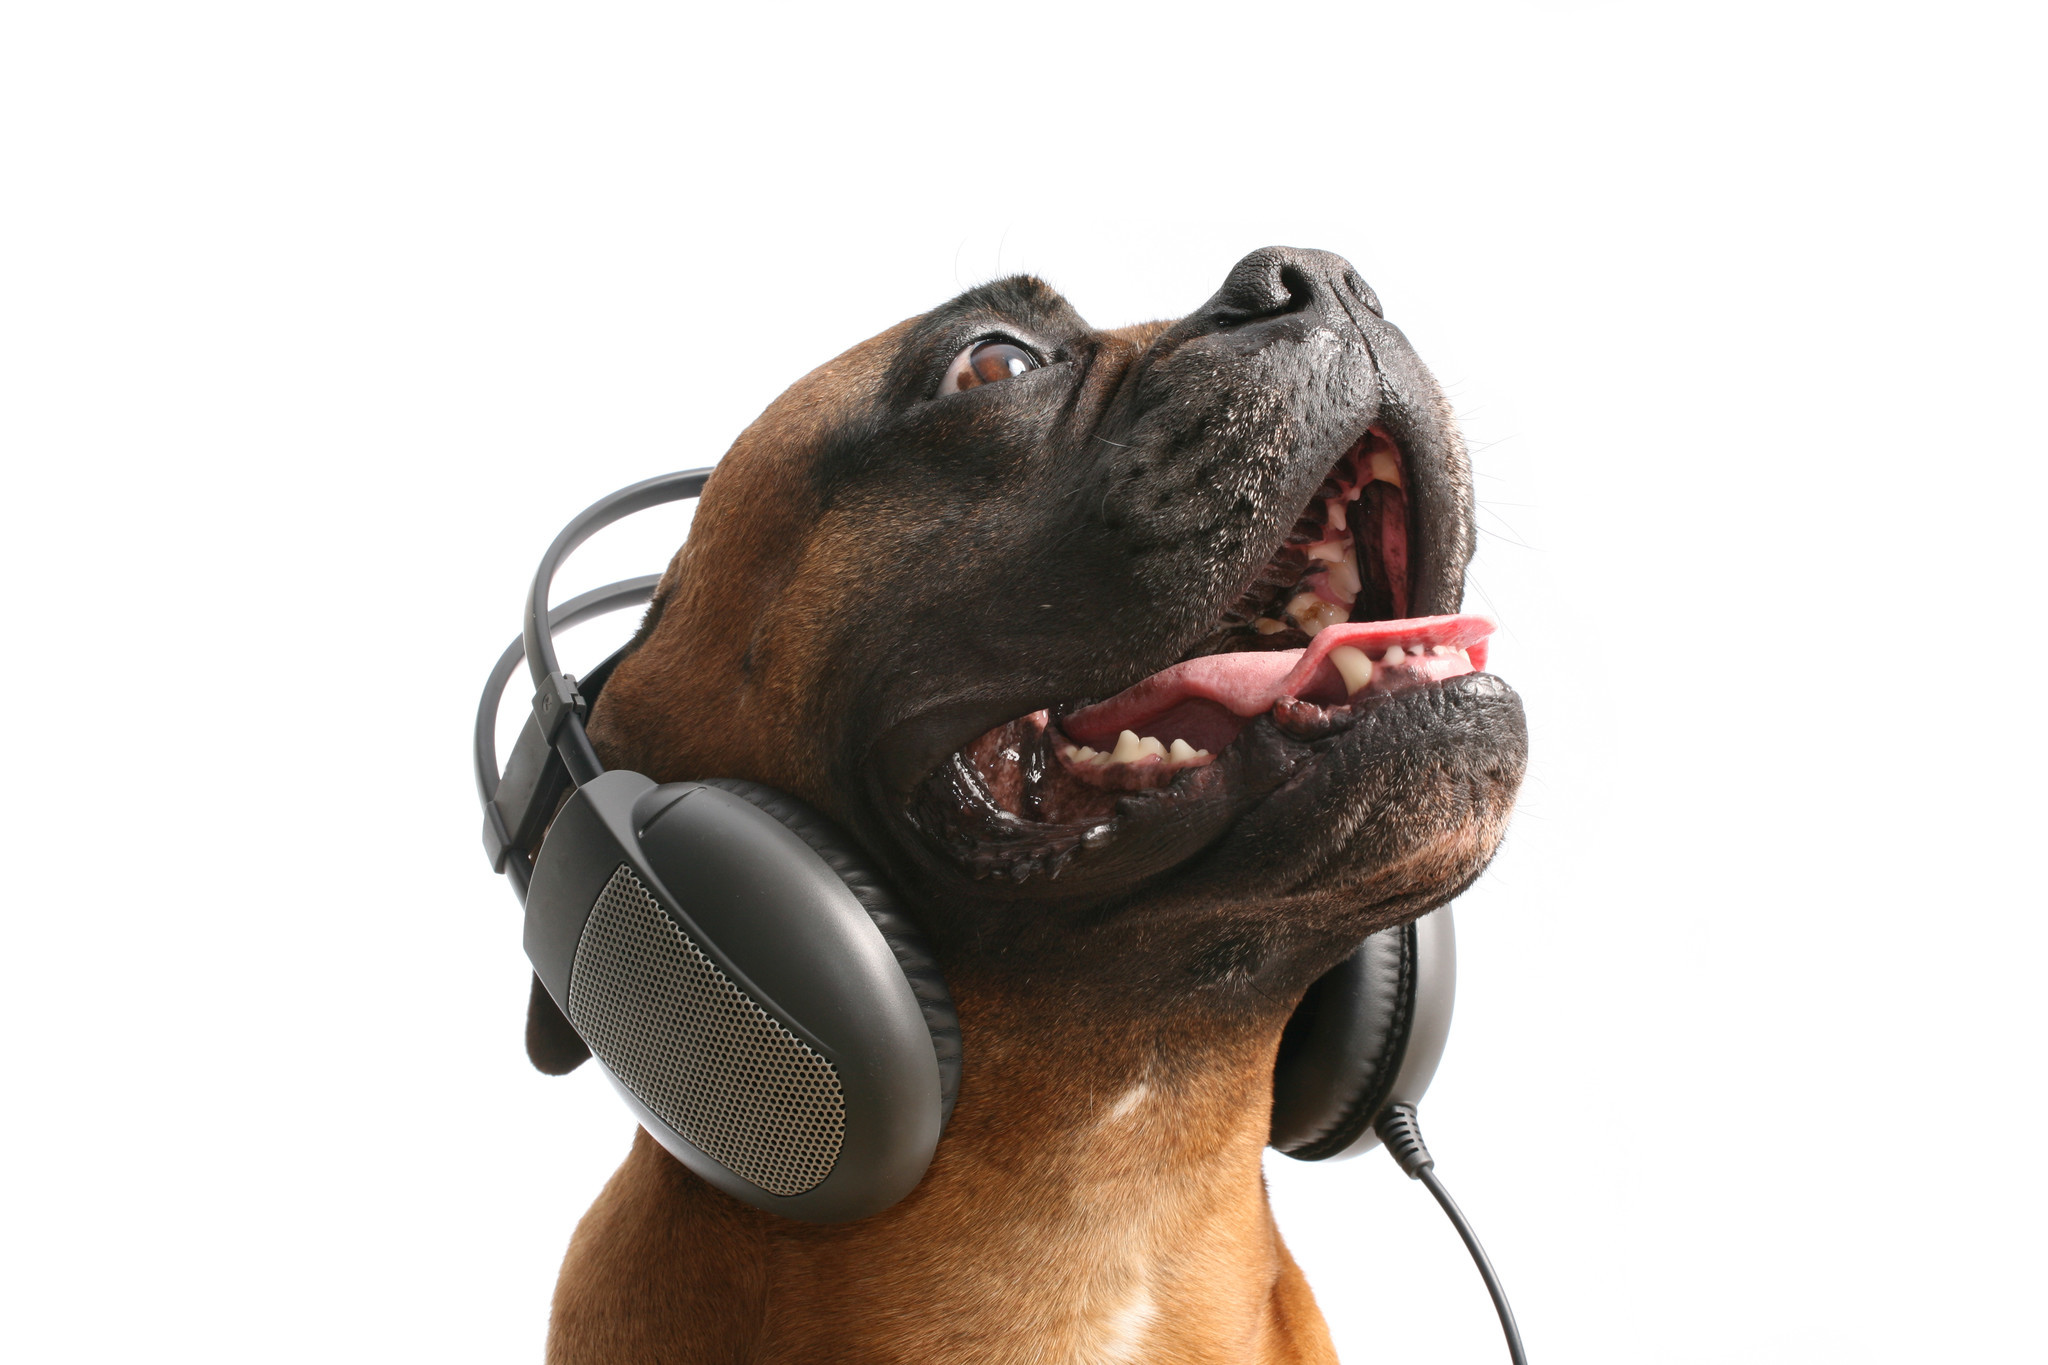 Spotify launches playlists for your pets so you can give your furbaby a personalized mix